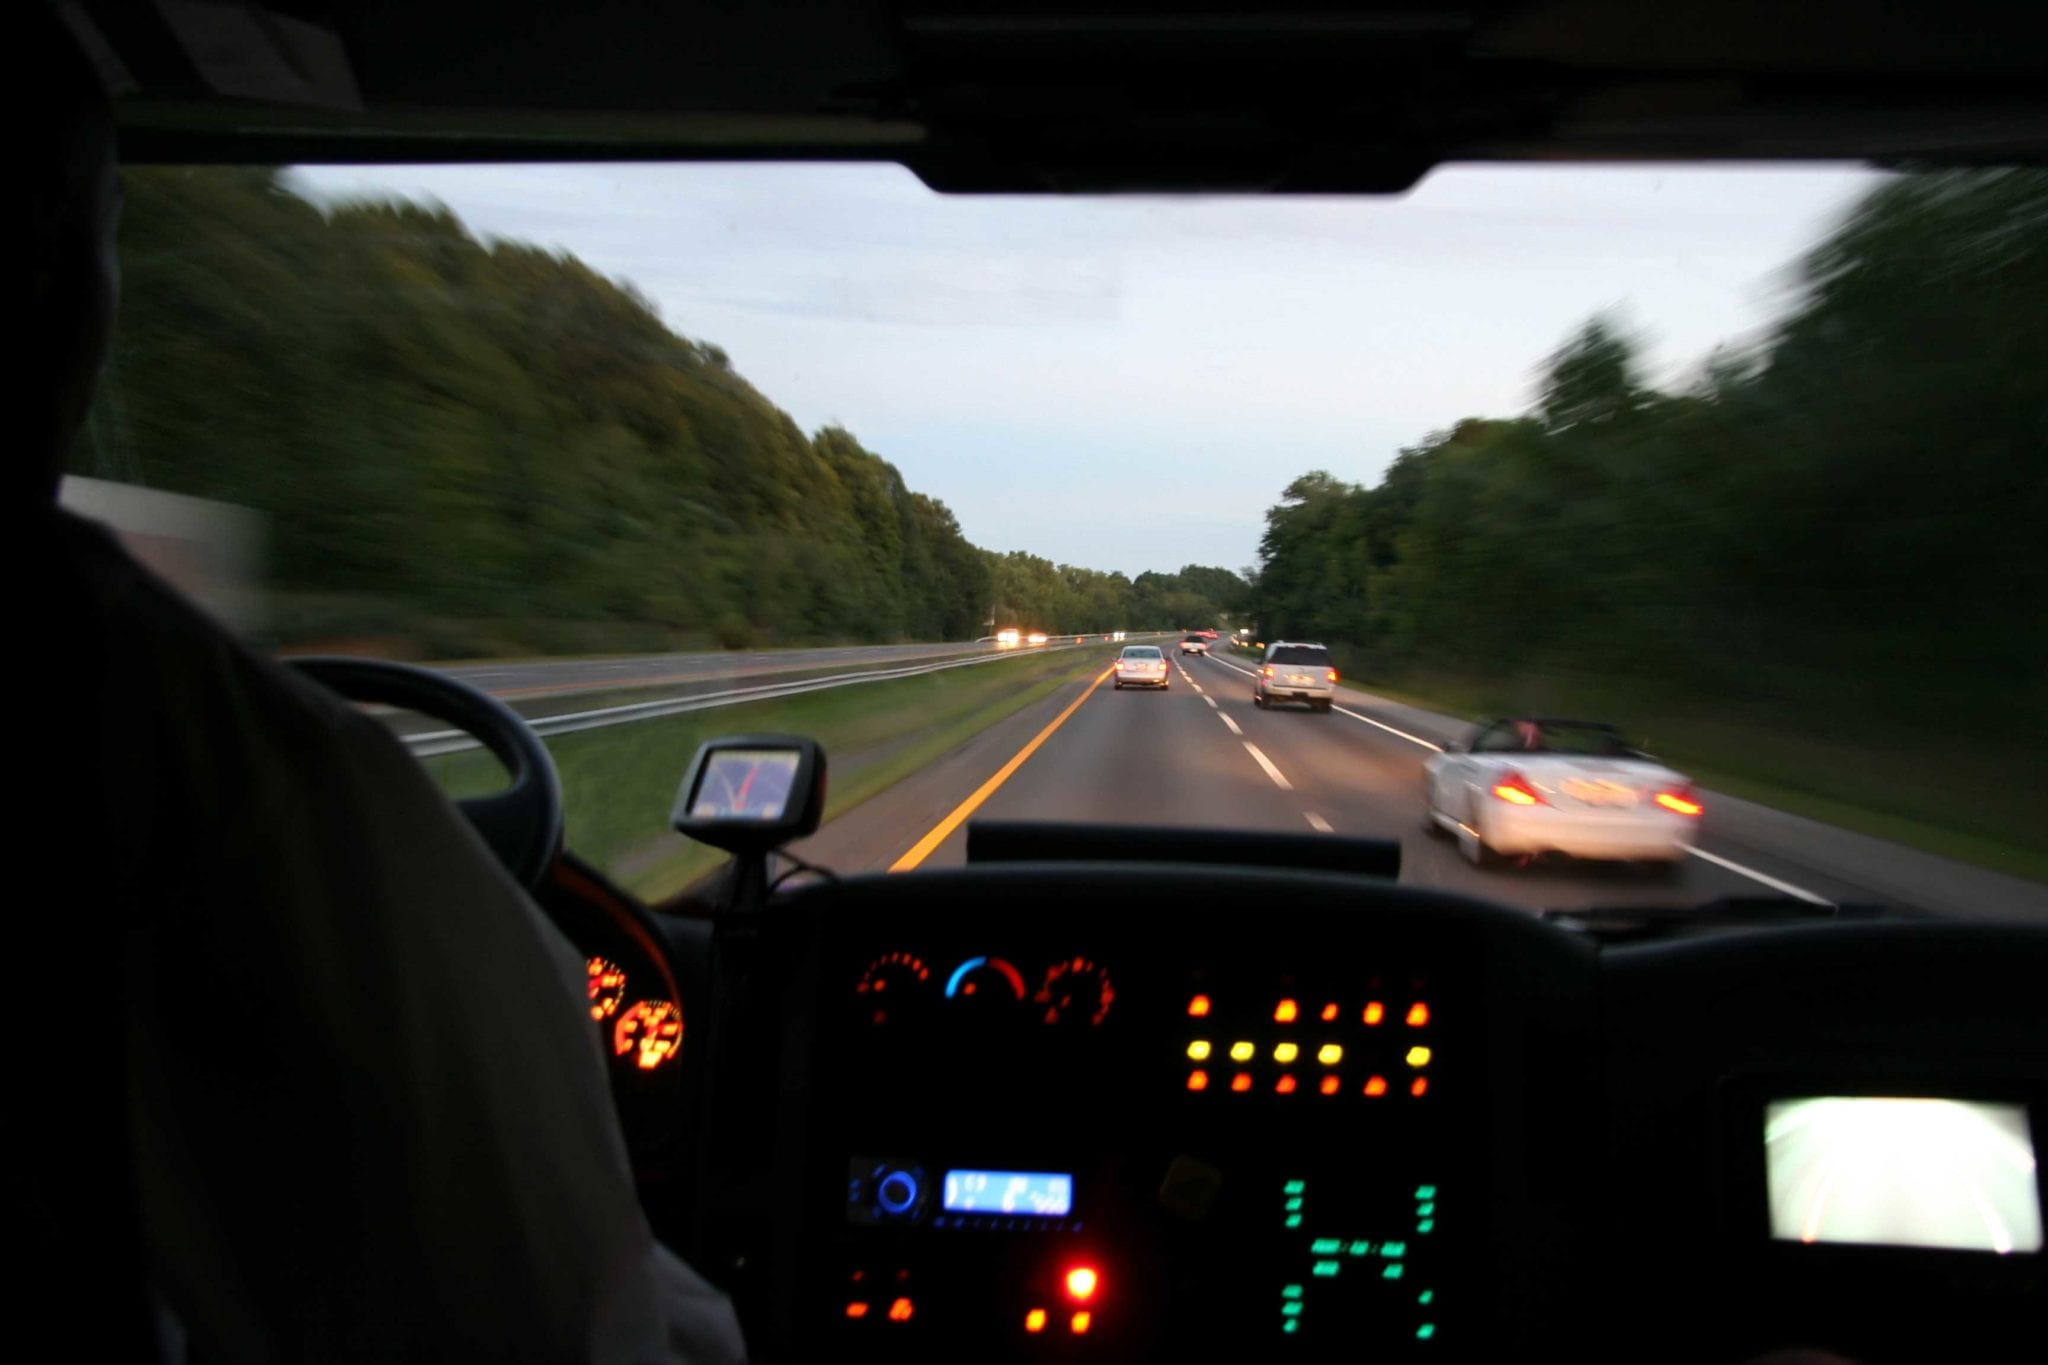 Cab of 18-wheeler truck stock photo